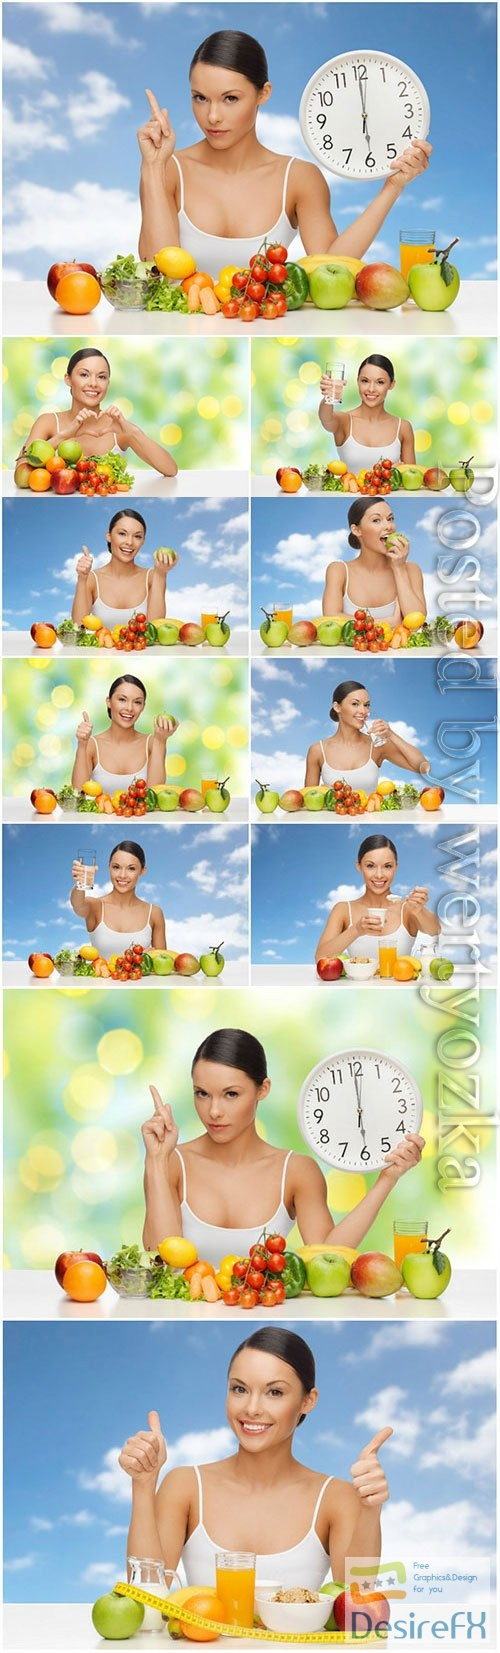 Healthy food concept, girl with fruits and vegetables stock photo